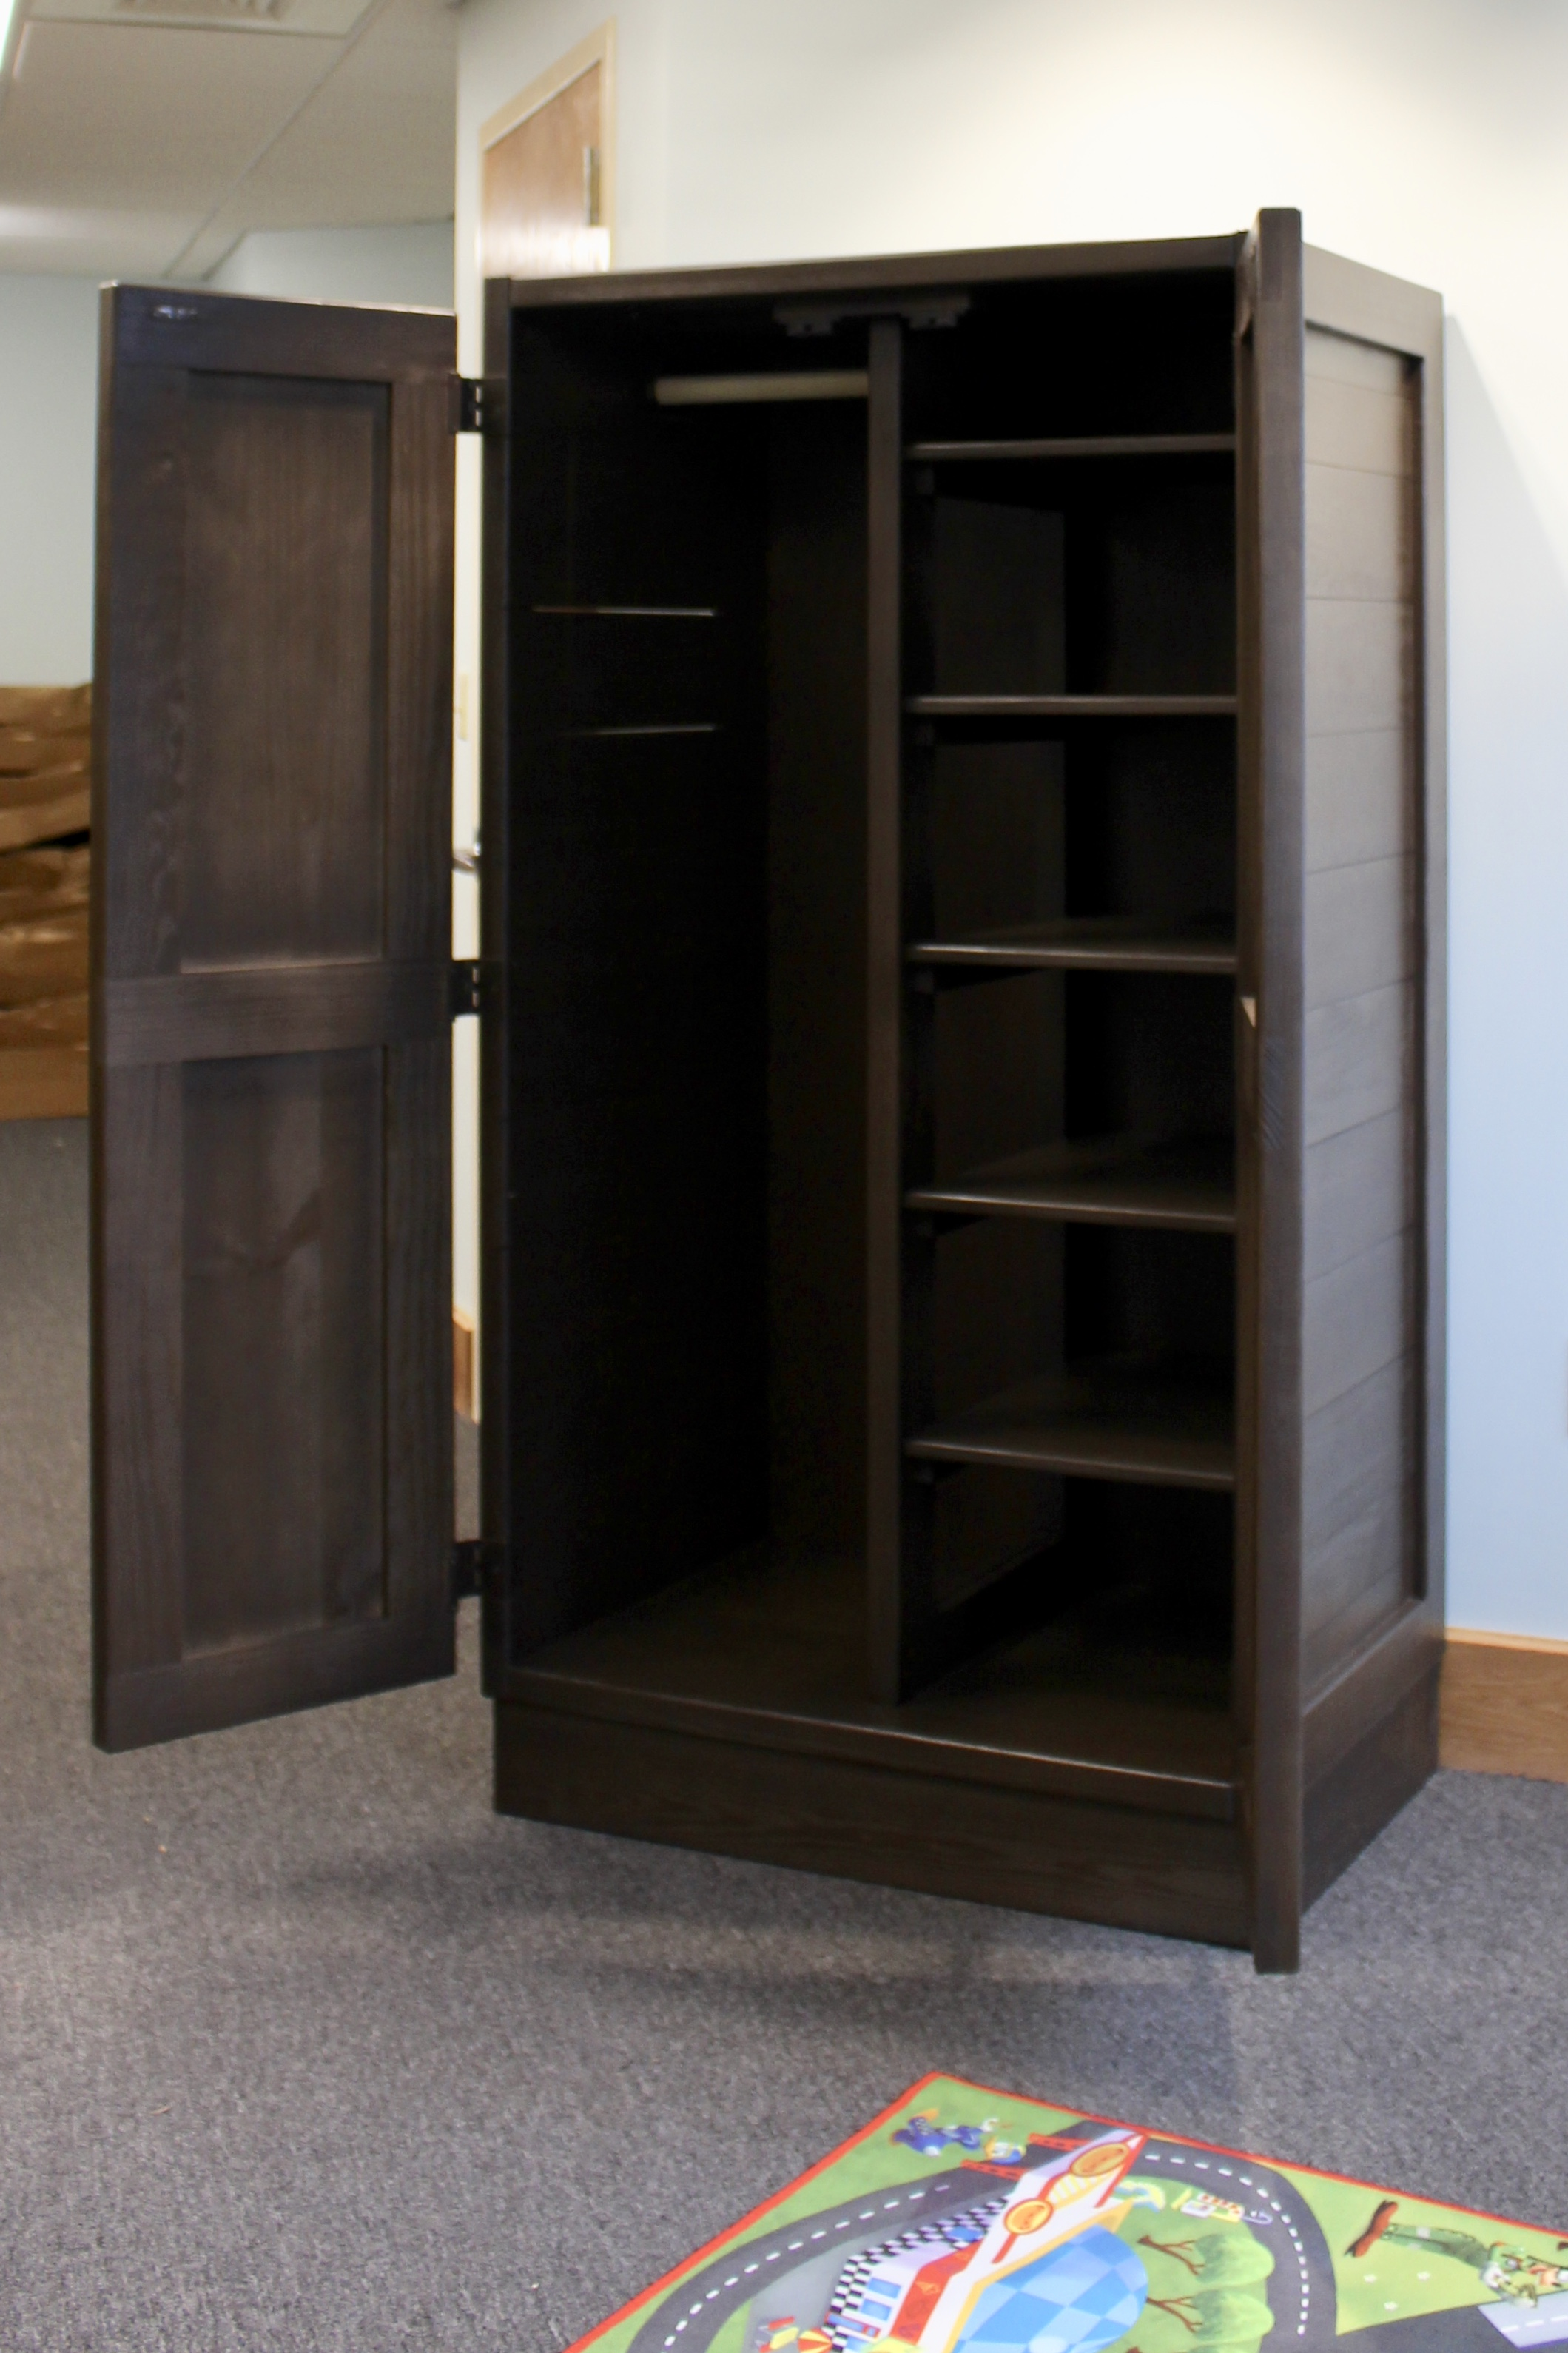 Classic wardrobe (Contract premium shown above $745, Standard 595) in espresso Being used in common area as storage for games and toys. can be built with all shelving. locking mechanism available for Behavioral Health and Education Agency